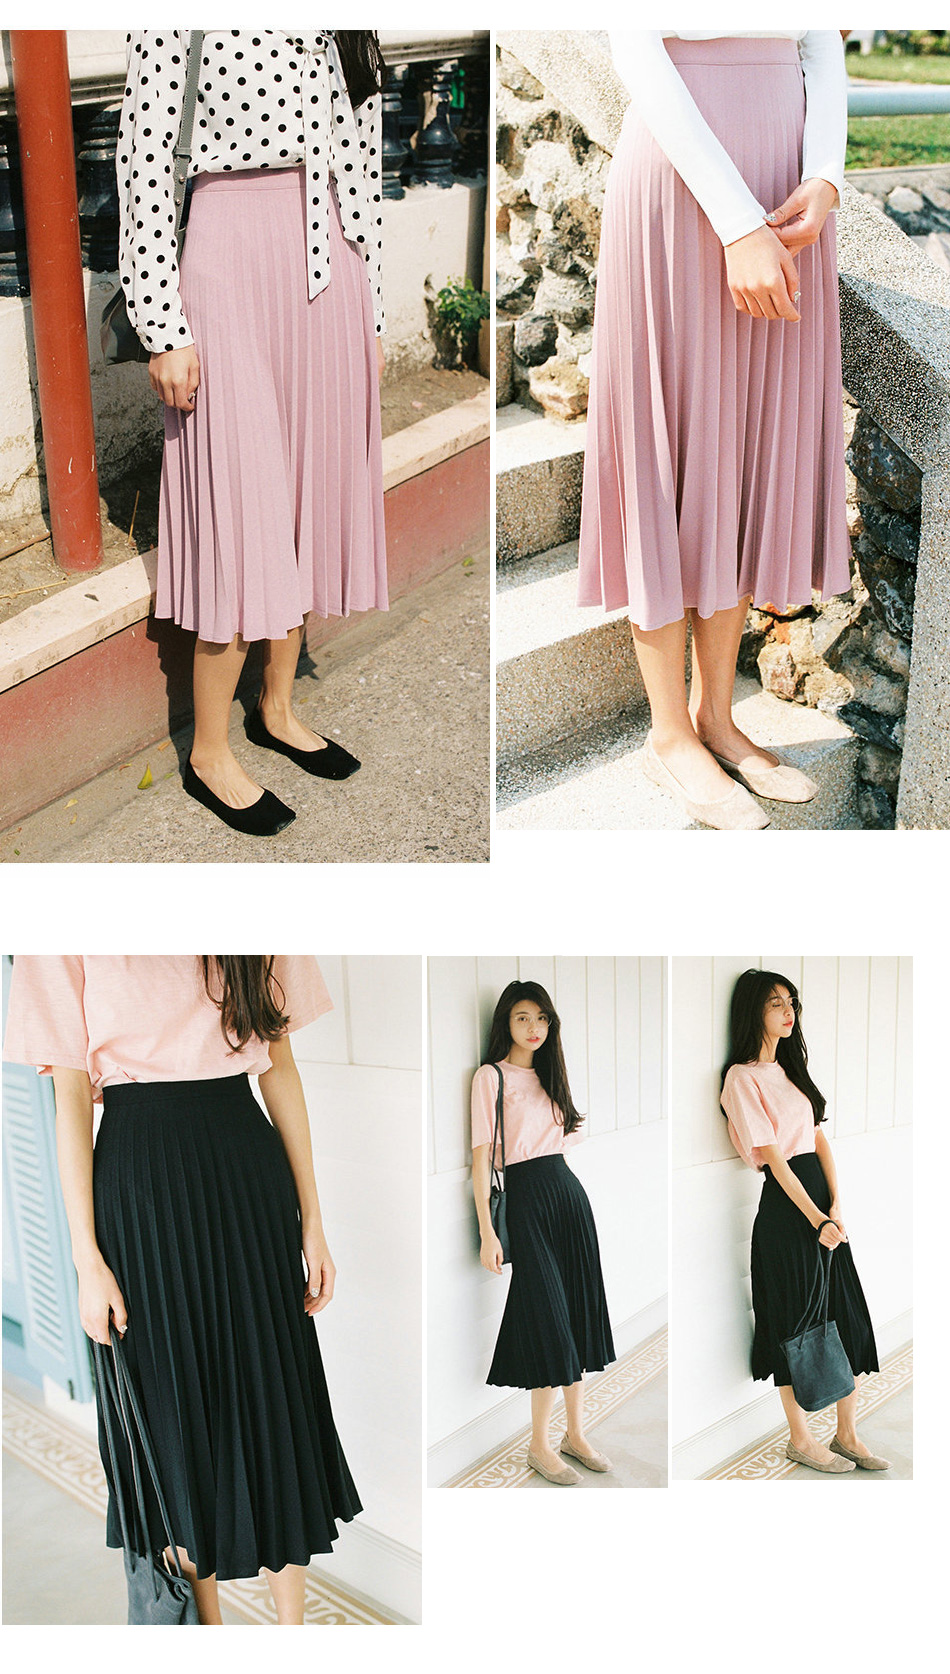 Aonibeier Fashion Women's High Waist Pleated Solid Color Length Elastic Skirt Promotions Lady Black Pink Party Casual Skirts 41